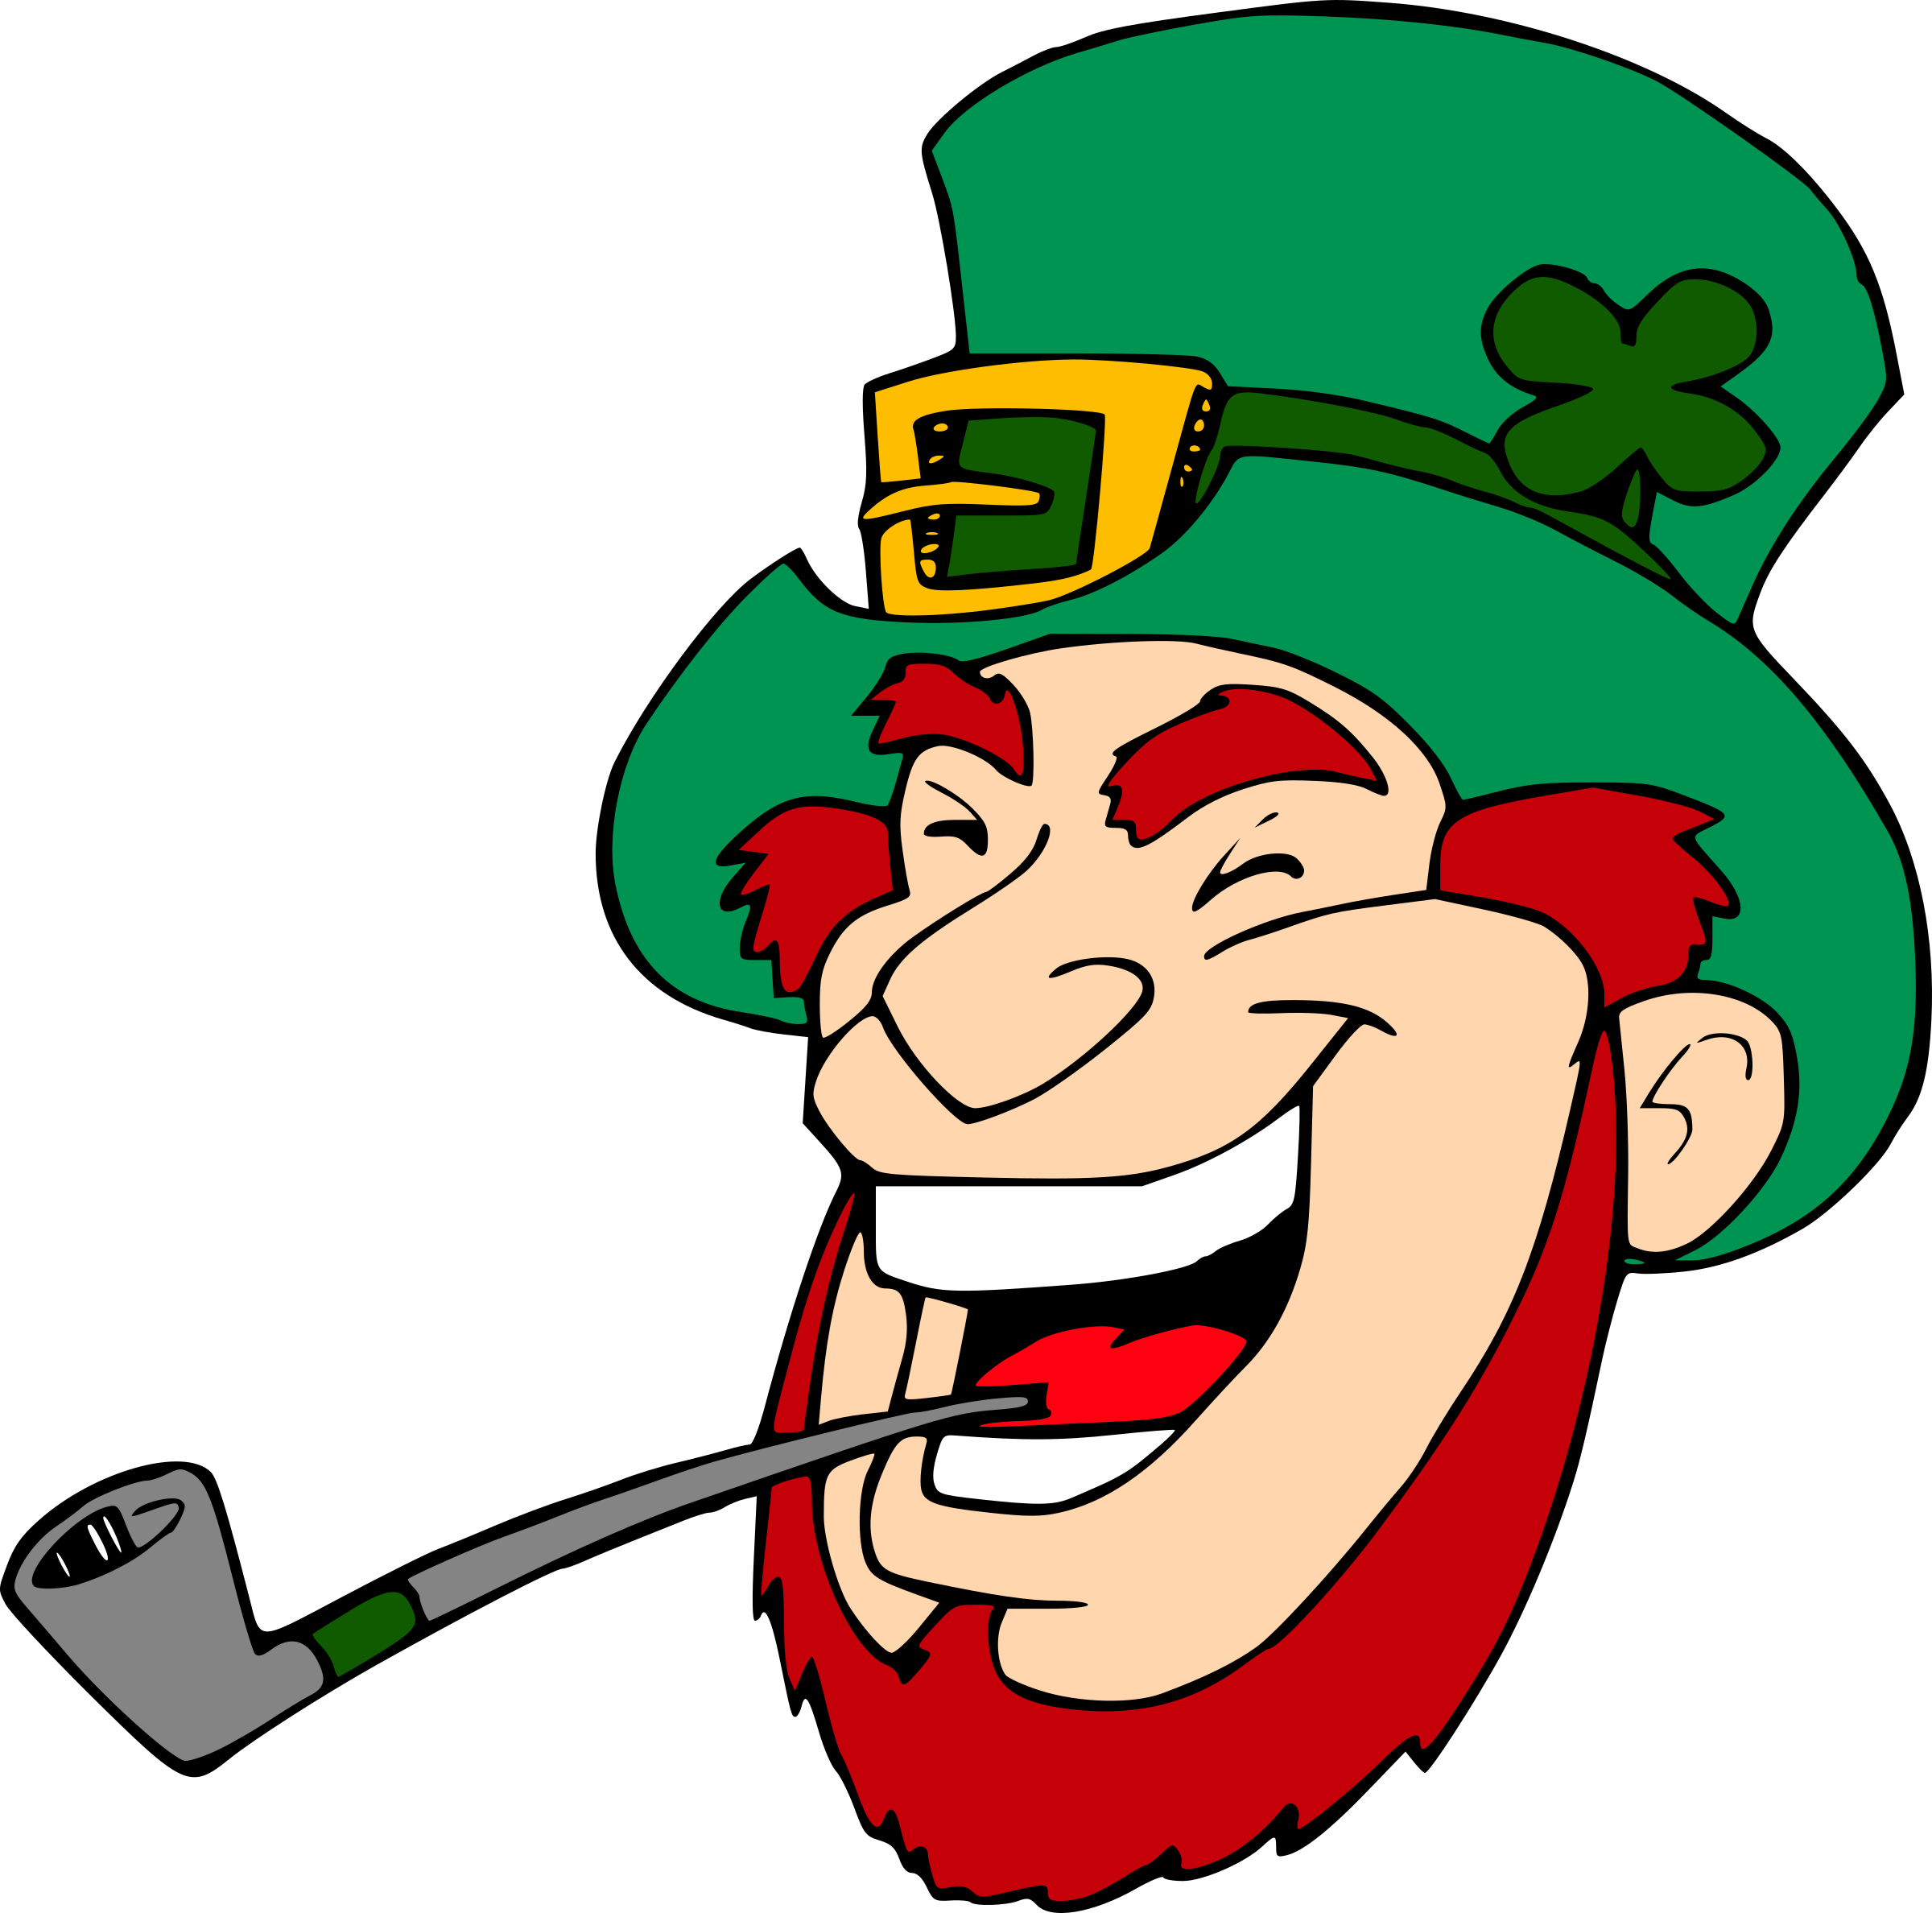 Irish clipart leprechaun, Picture #1420977 irish clipart.